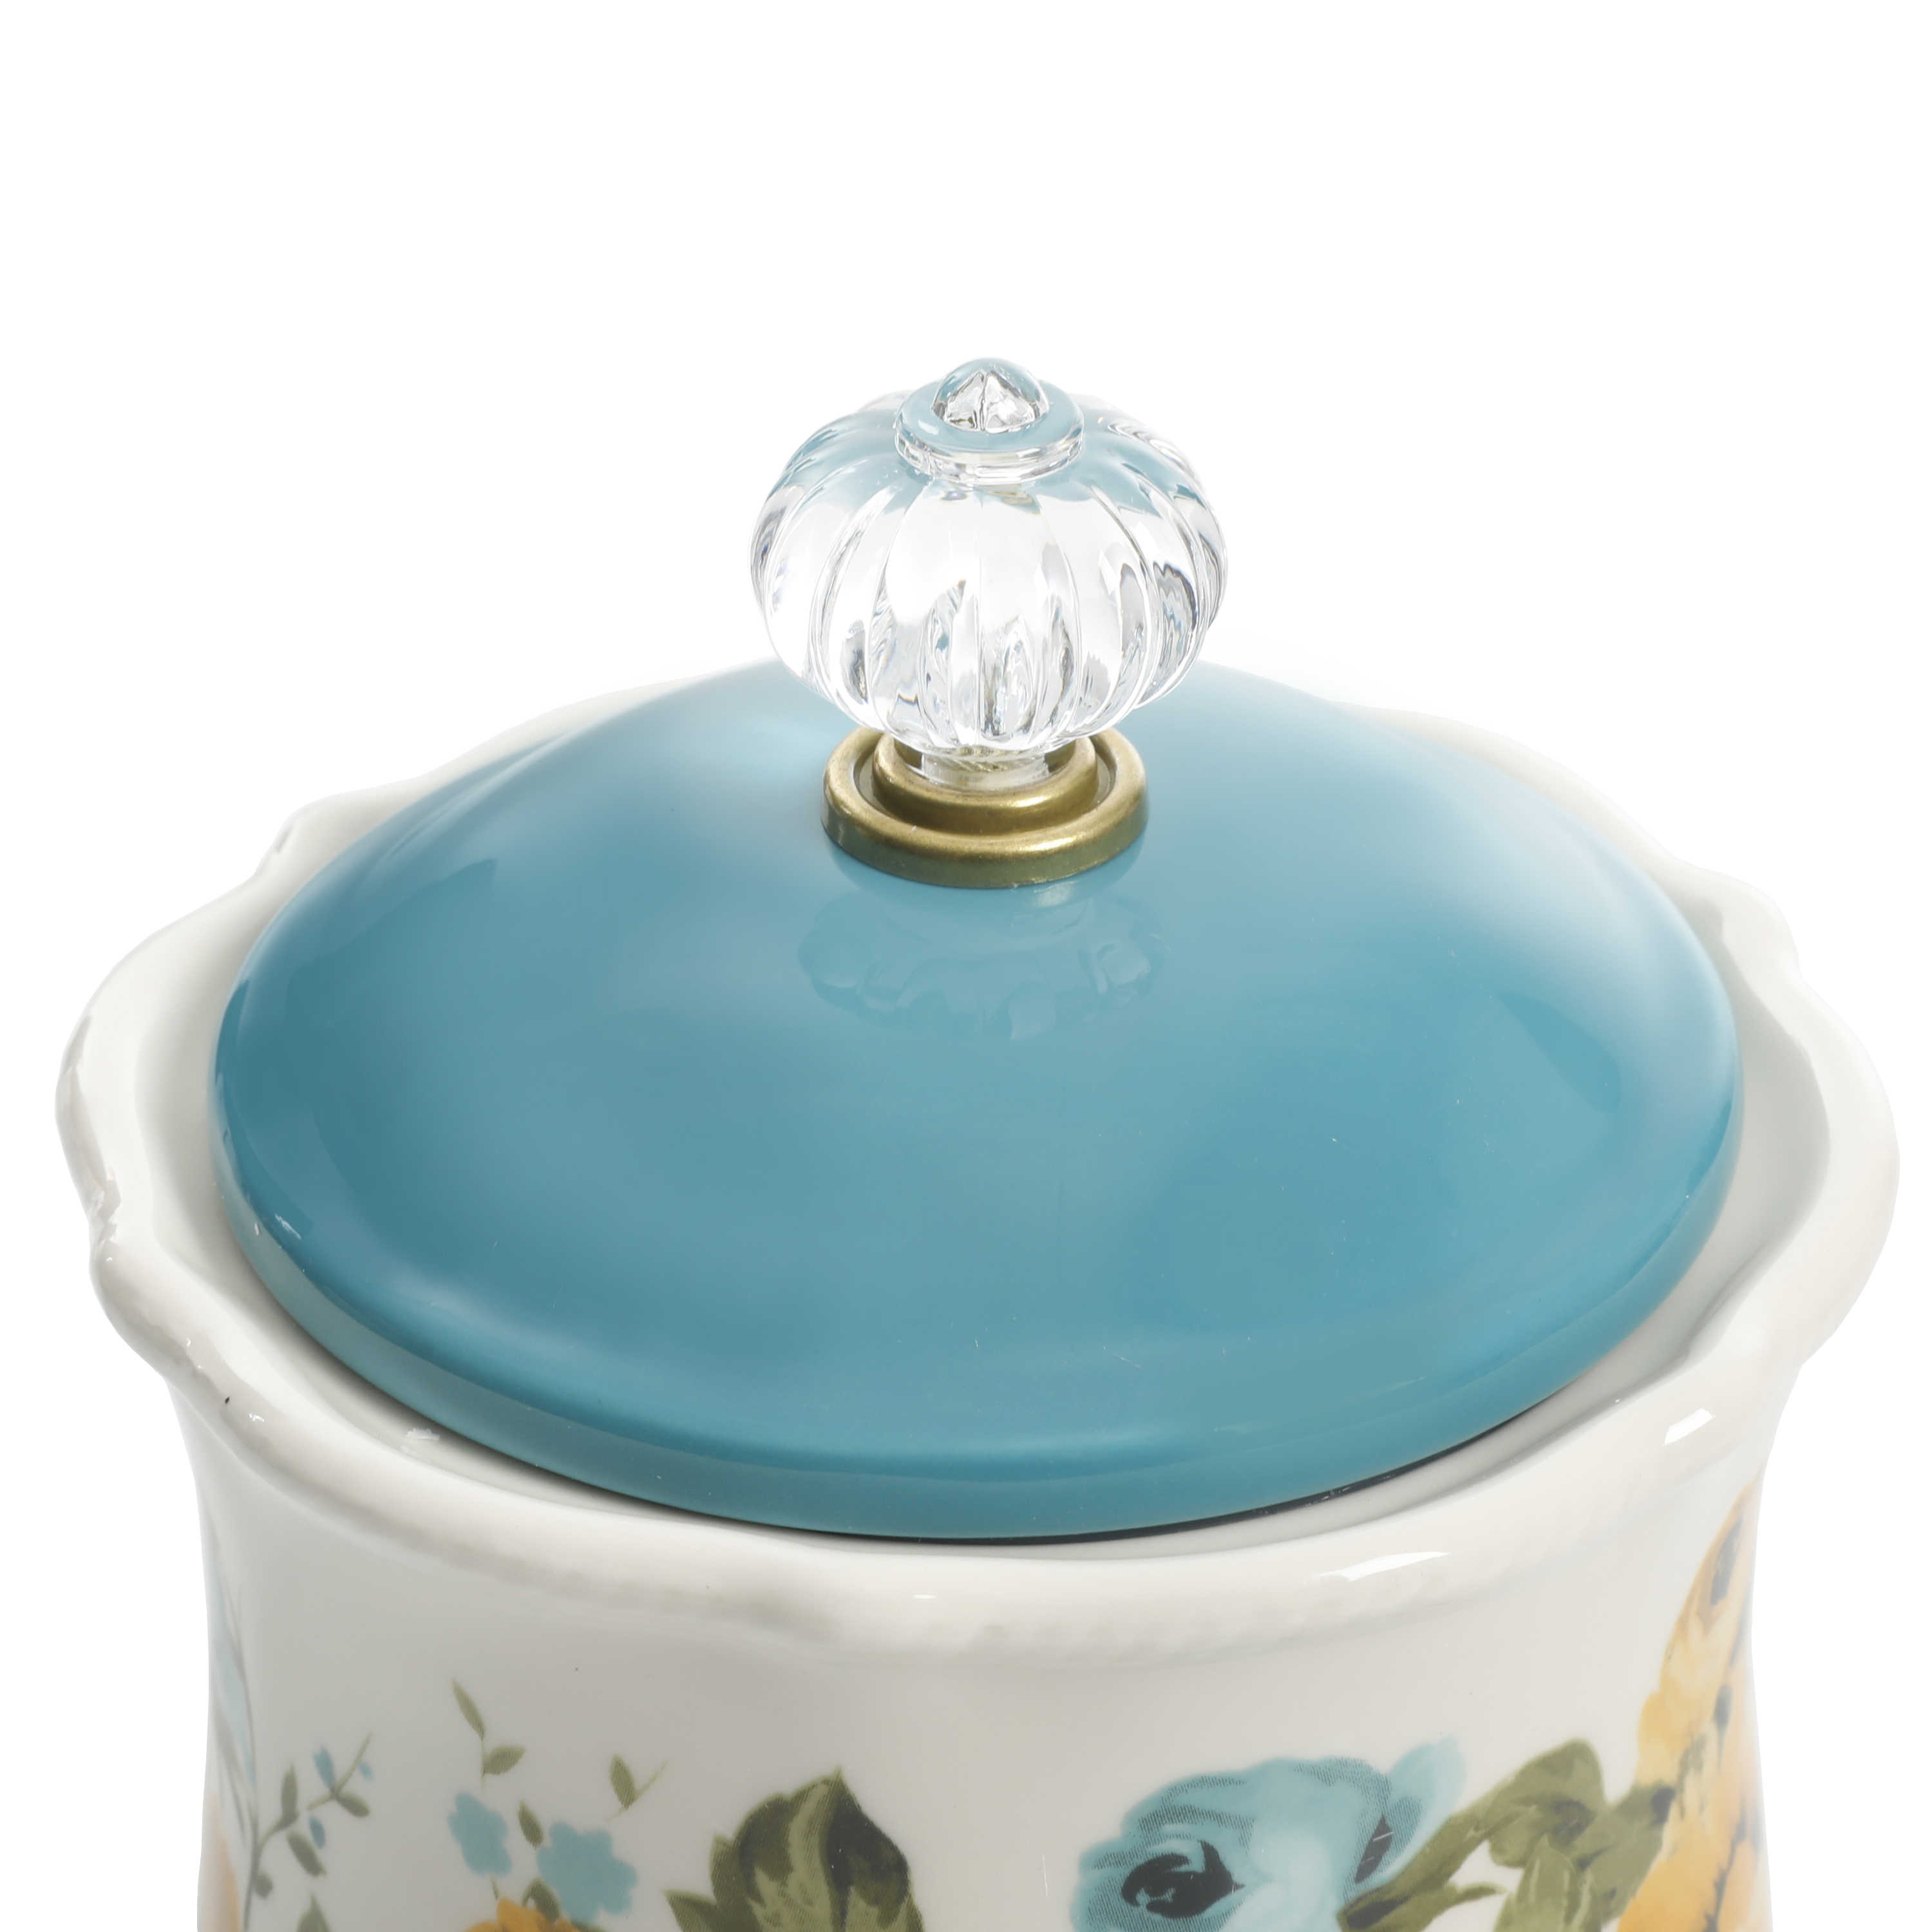 """NEW The Pioneer Woman Blossom Jubilee Canister with Acrylic Knob 8.75/"""""""